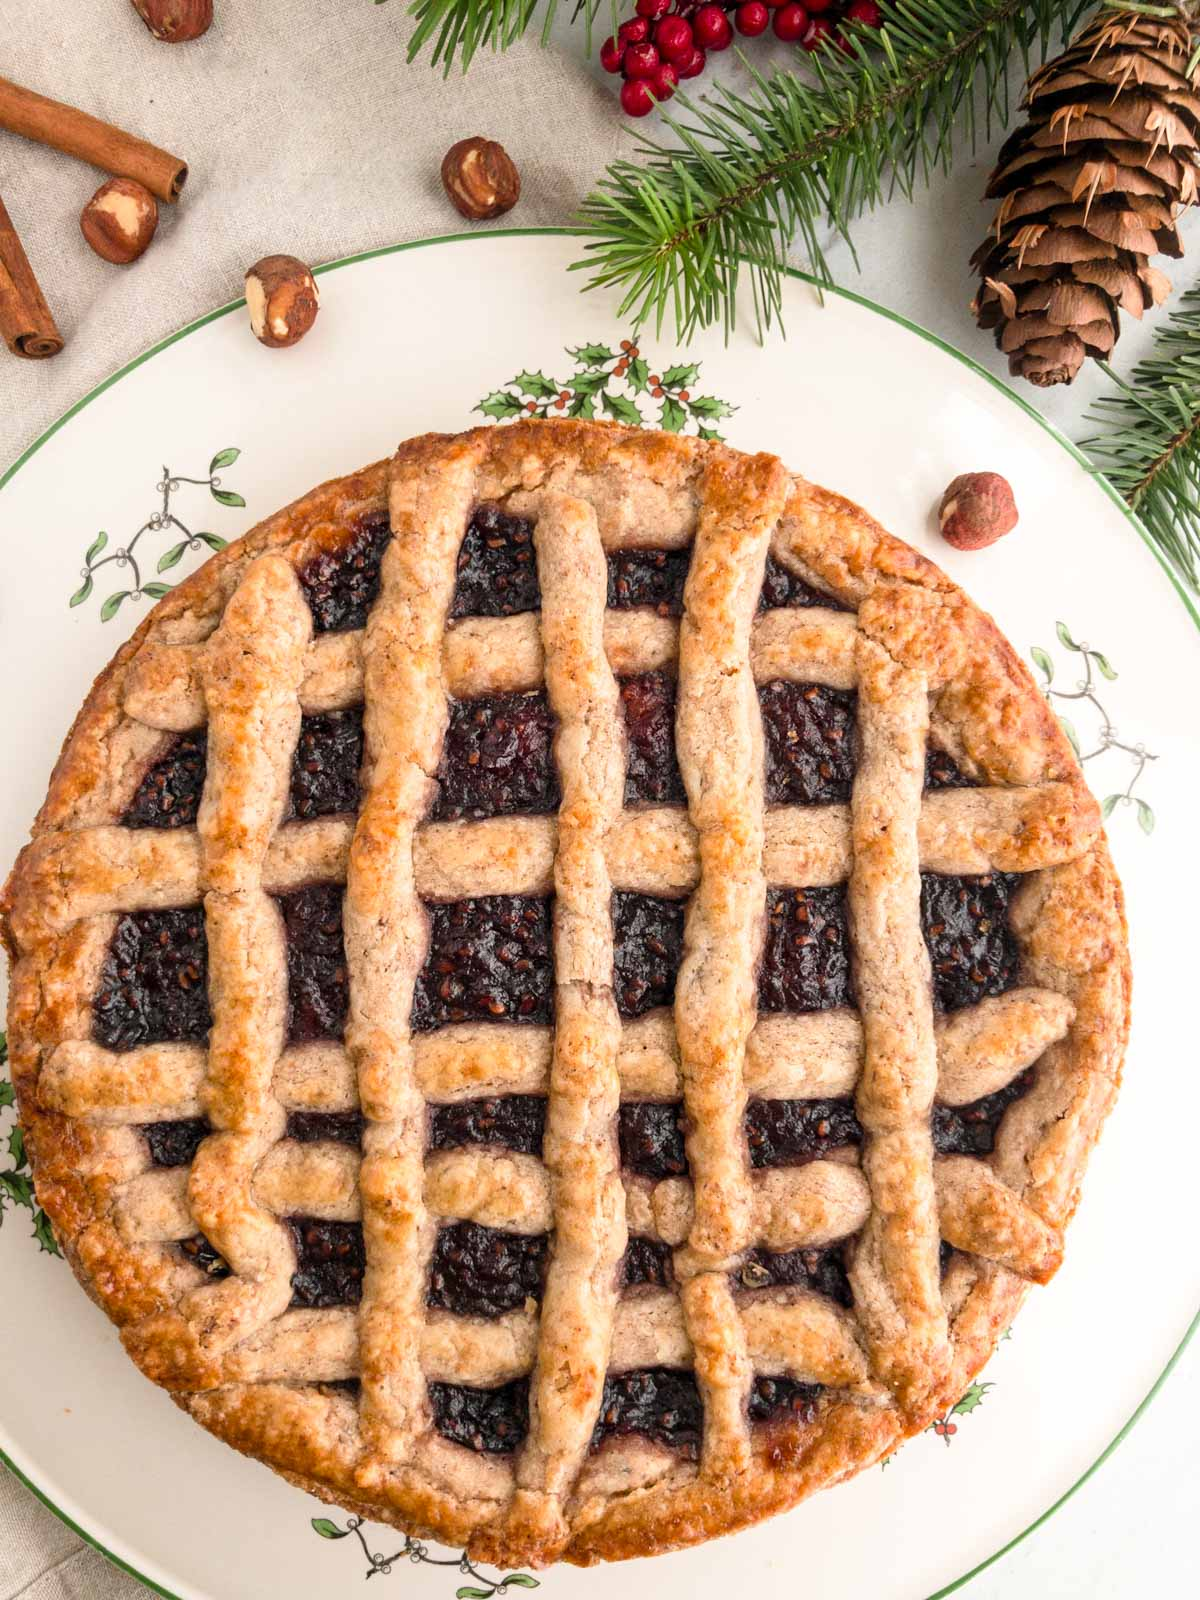 LInzer torte on a cake plate